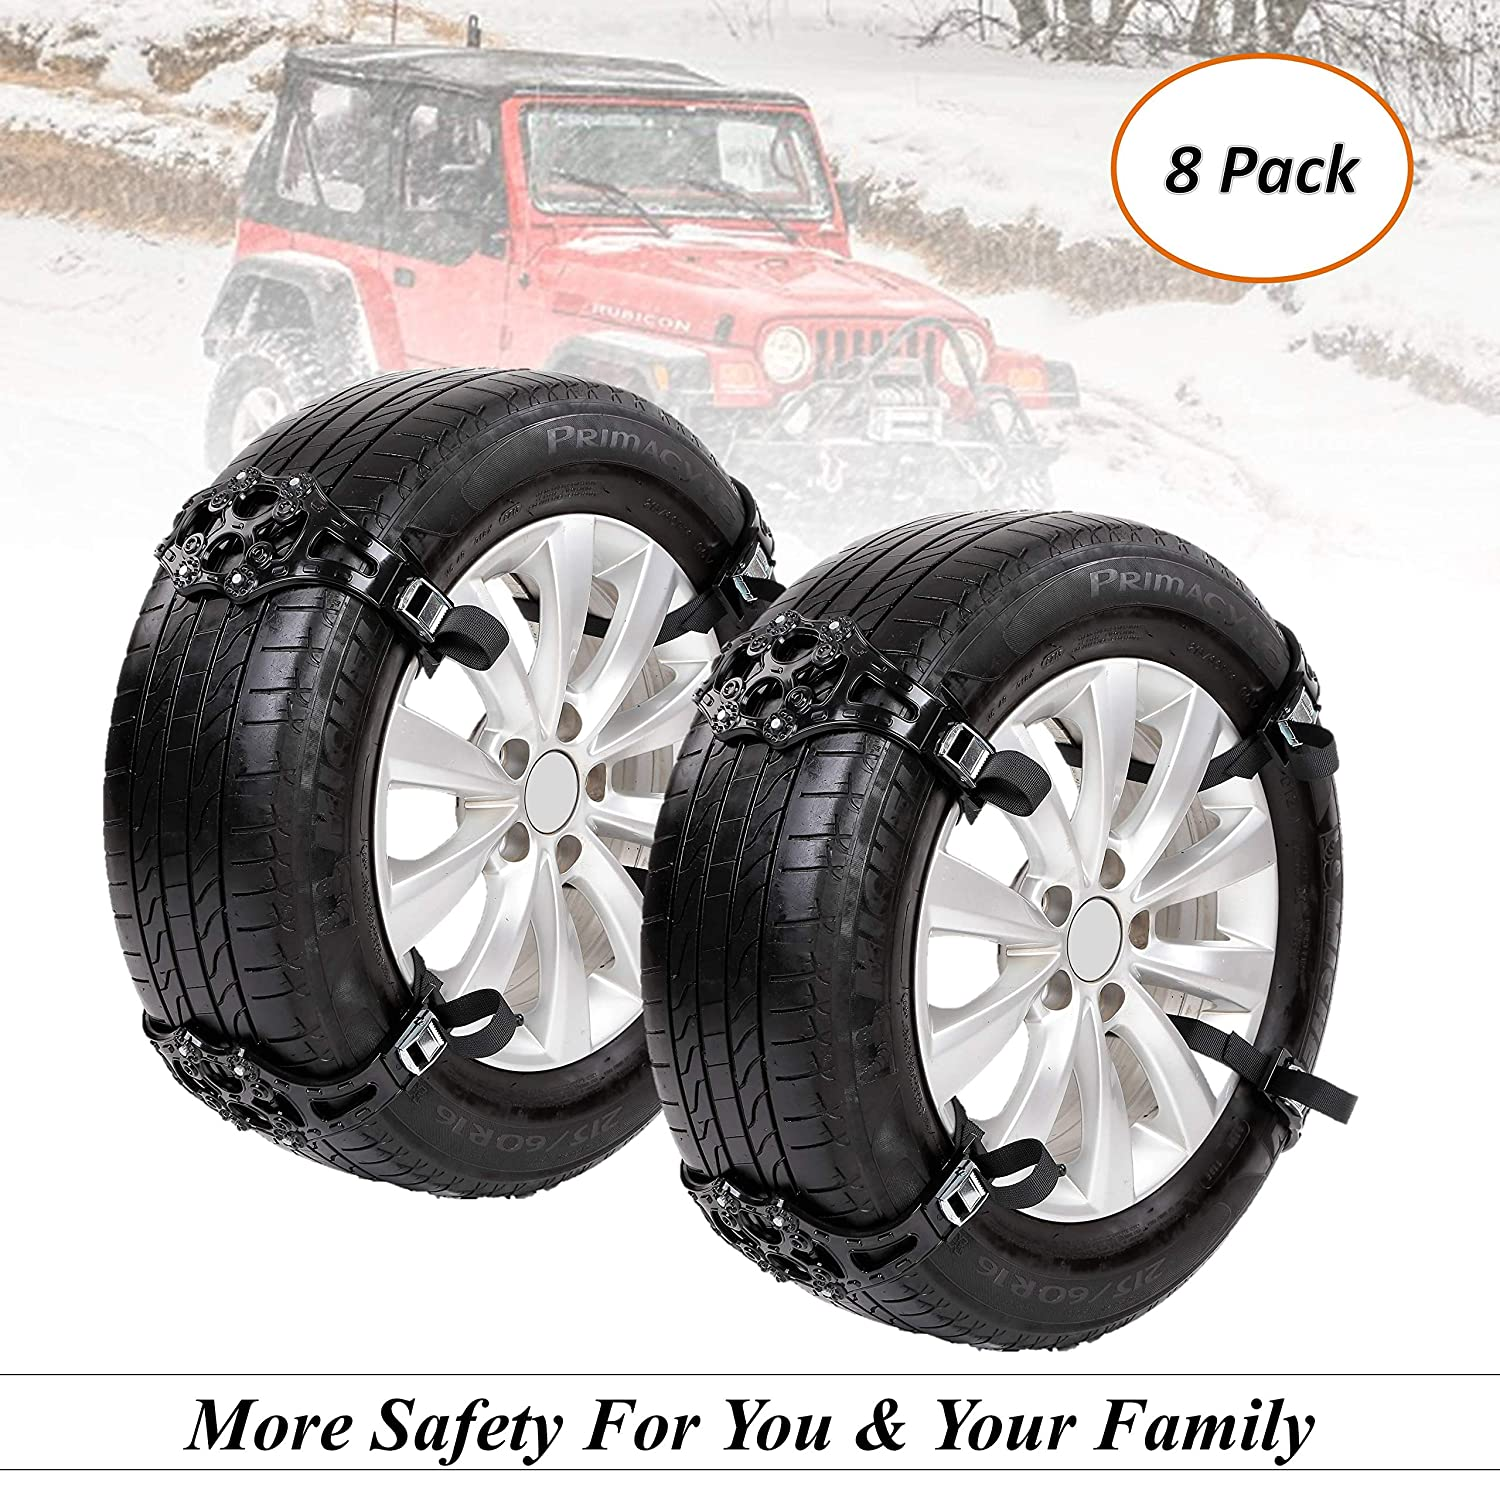 Fun-Driving Tire Chains,Tire Snow Chains,Snow Chains for Car/Truck/SUV/RV, with Tire Width 165-275mm/6.5''-10.8'' (8 Pack)